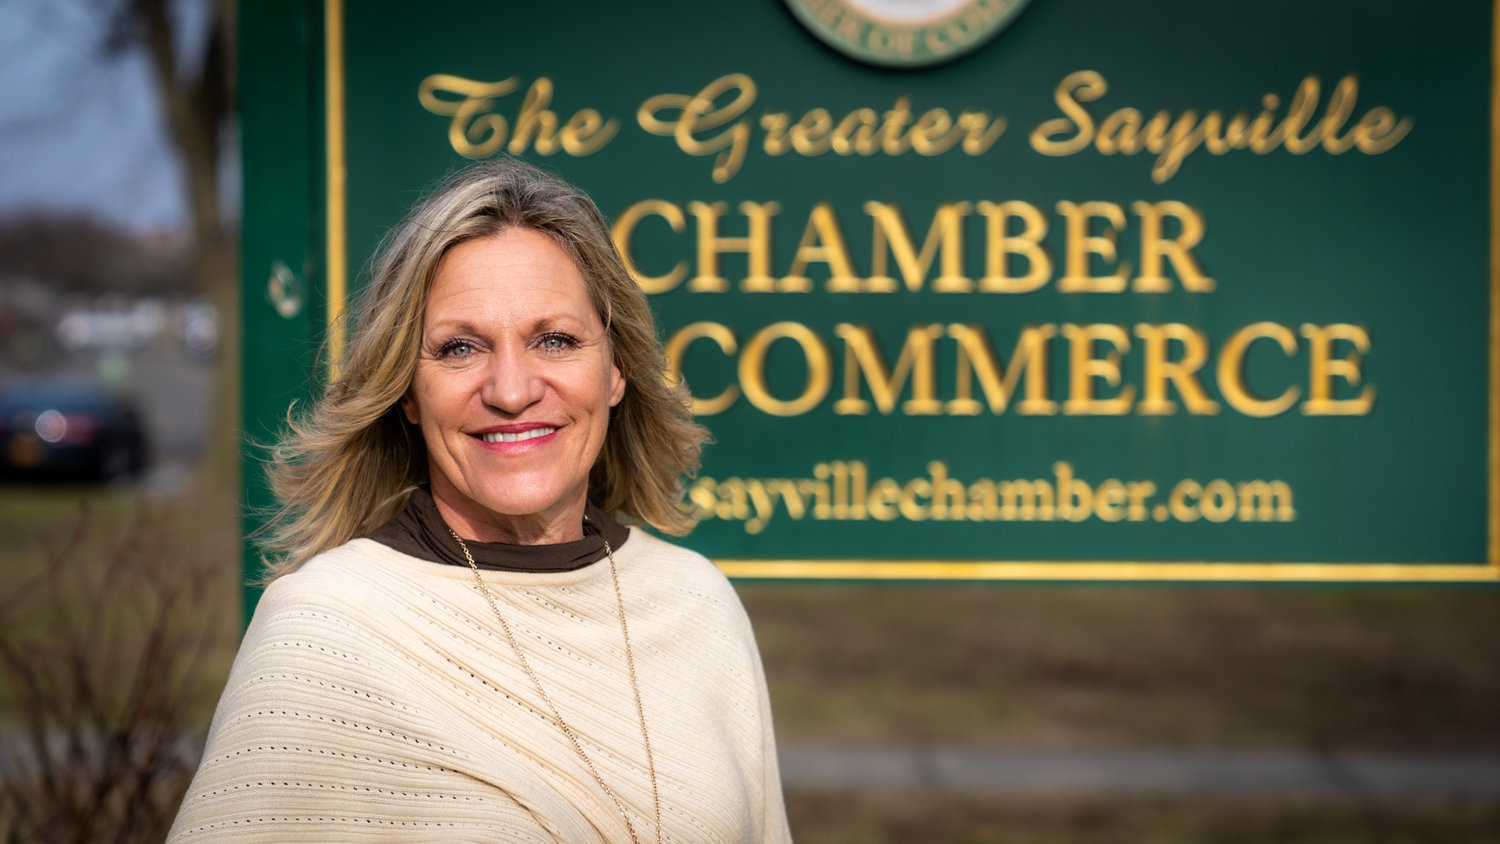 Eileen Tyznar proudly holds her position as president of the Greater Sayville Chamber of Commerce and is a force of elevation in the community as 2019's Inspiration Award winner.